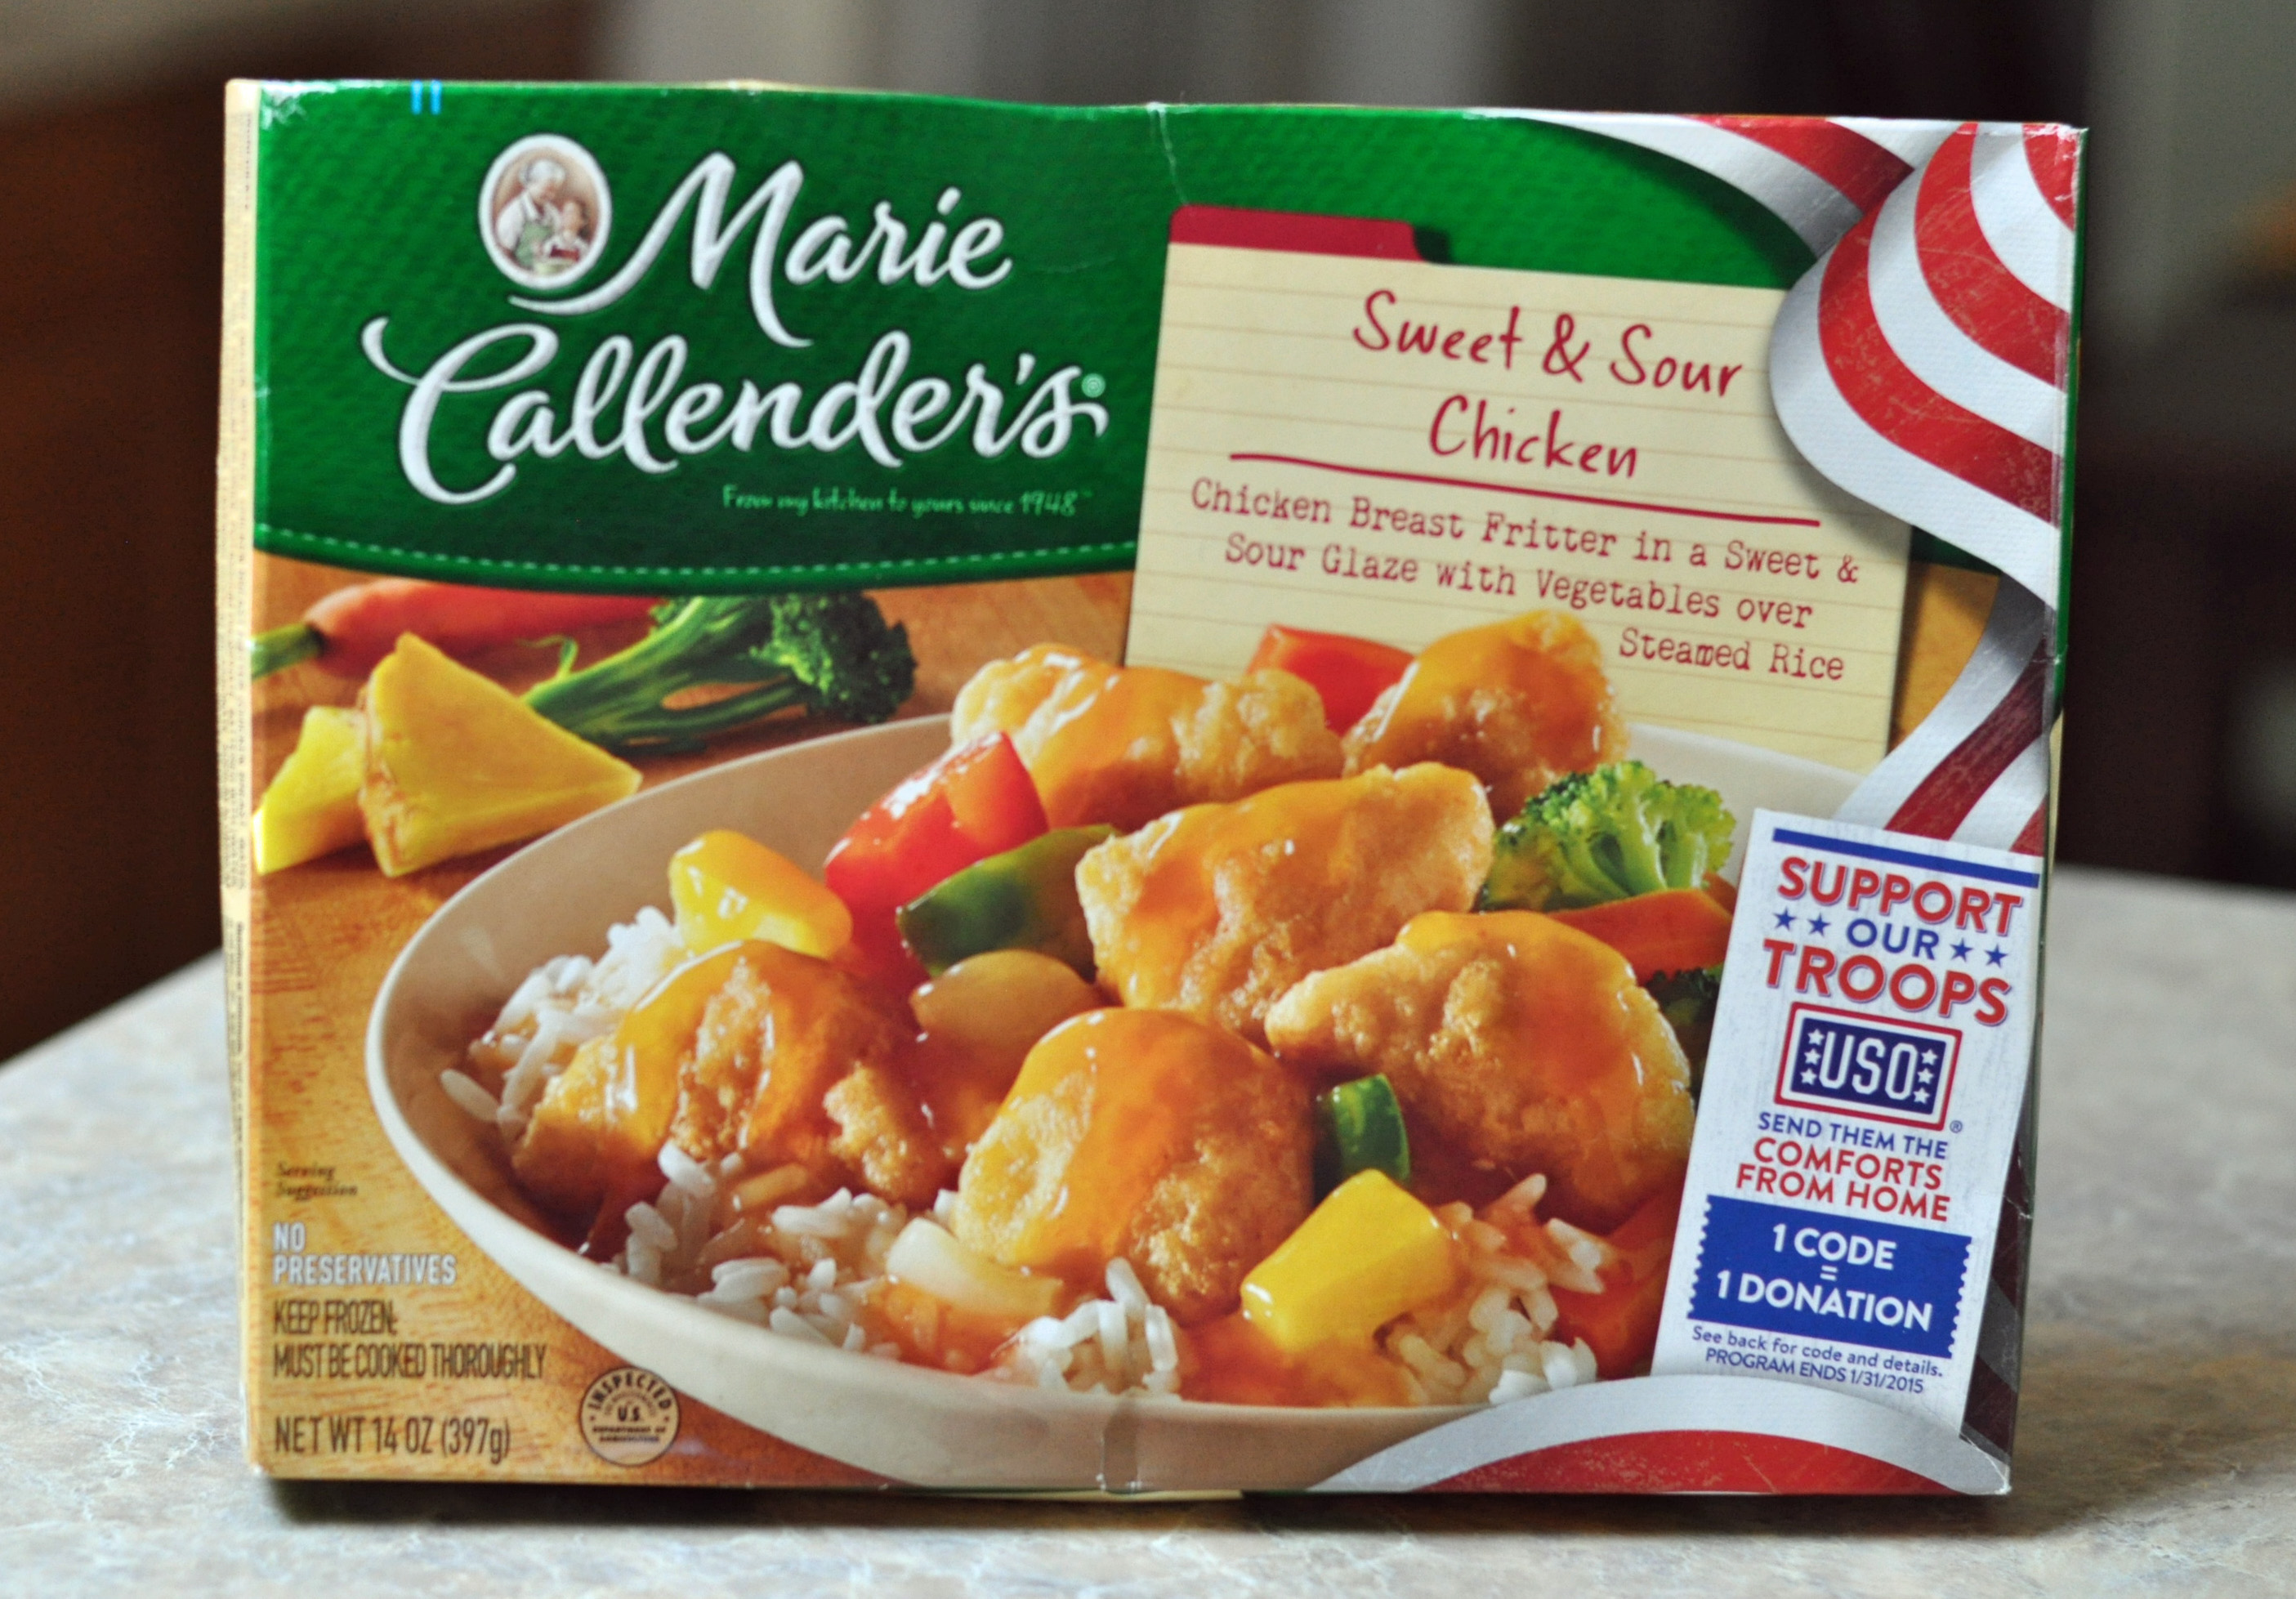 Marie Callender's Partners with USO To Provide Comforts from Home